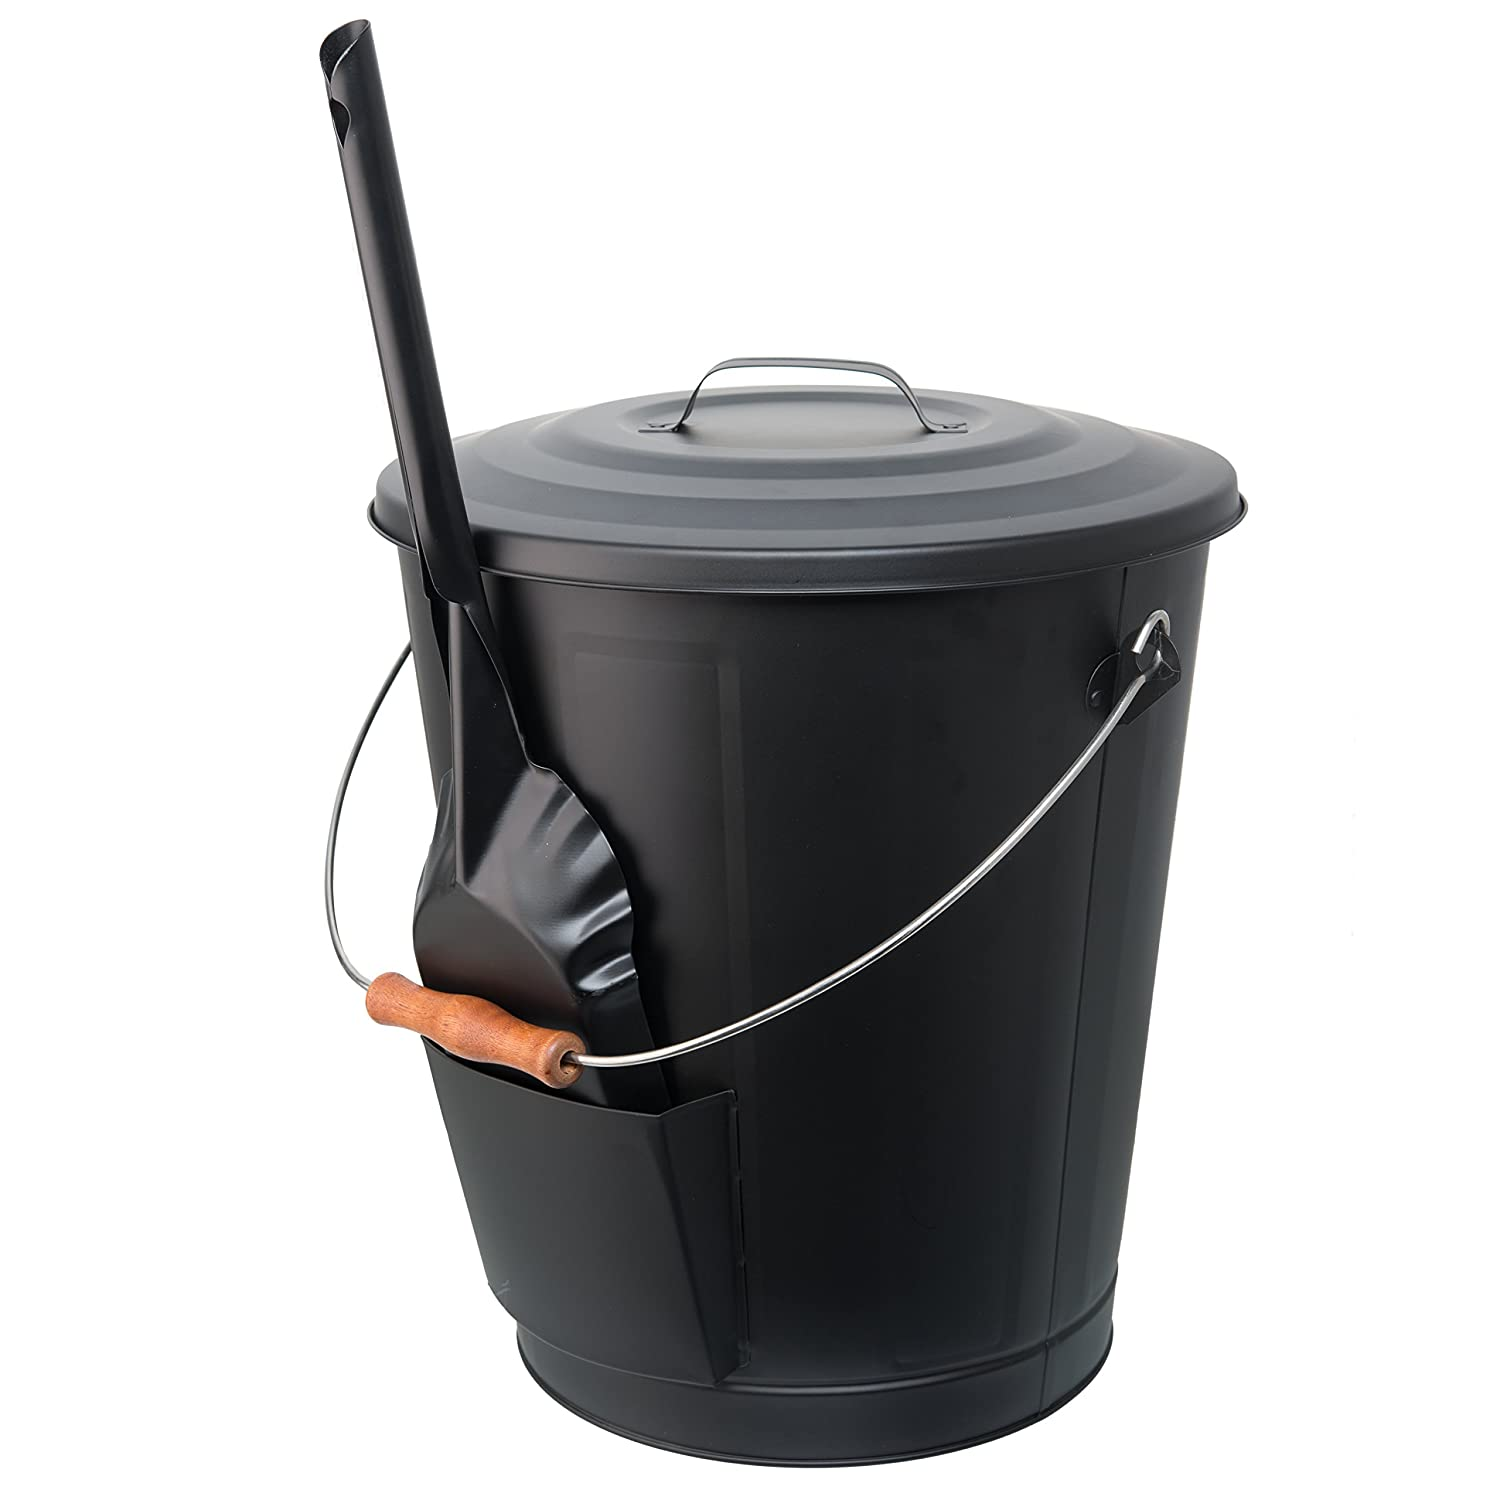 California Home Goods Ash Bucket for Fireplace with Shovel Tool, Large Capacity 6 Gallon Can with Lid and Wood Handle, Black 6639912